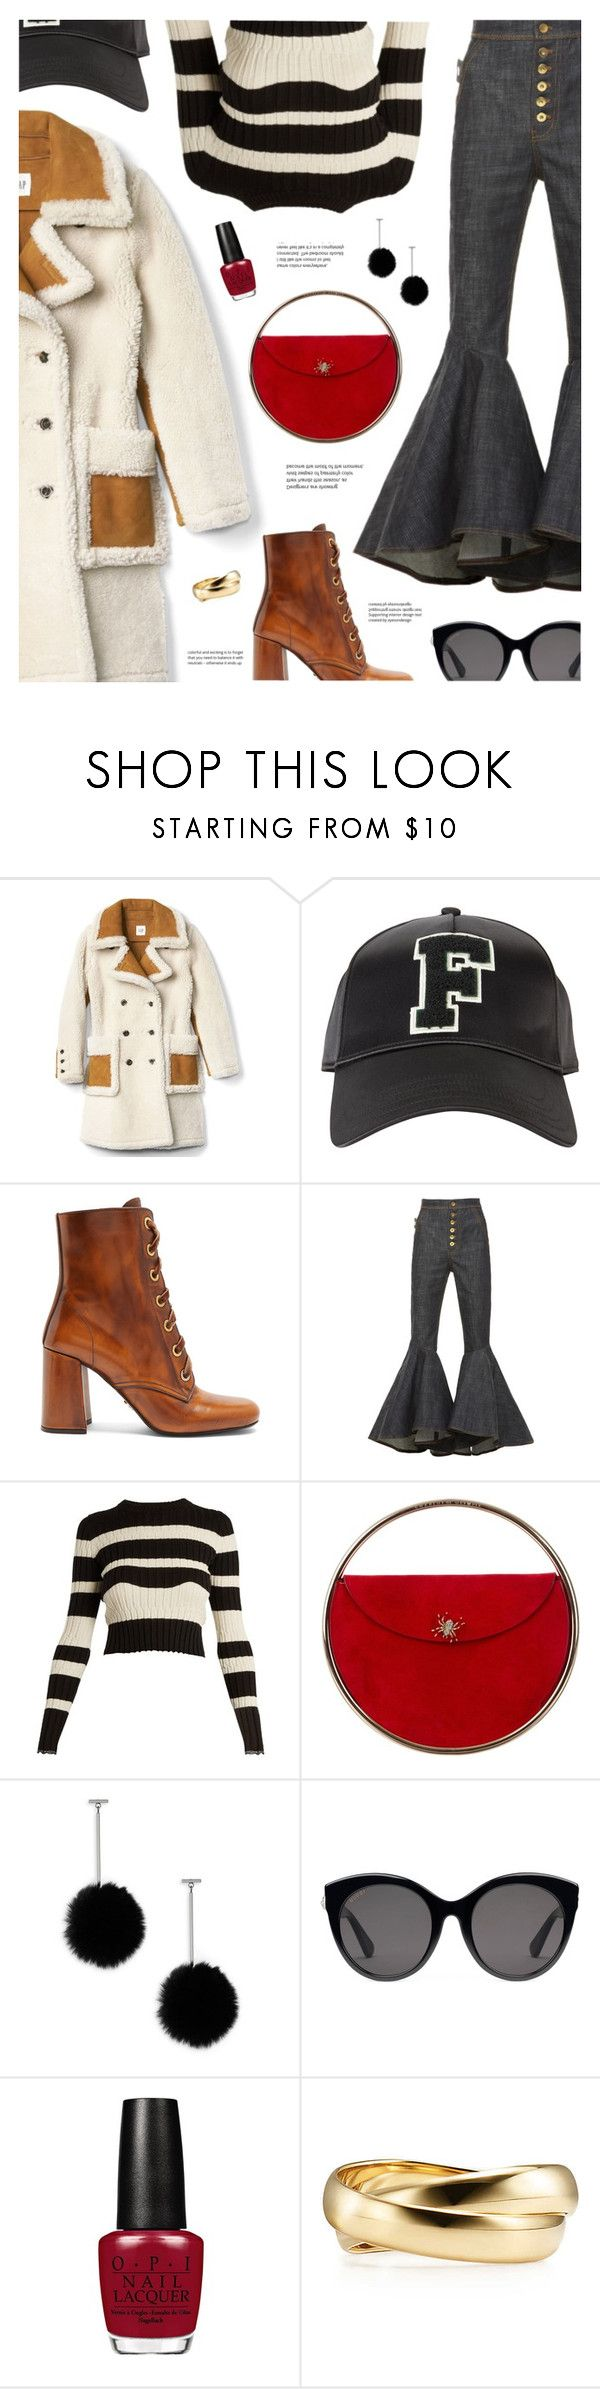 """""""Casual Friday"""" by catchsomeraes on Polyvore featuring Puma, Prada, E L L E R Y, Proenza Schouler, Charlotte Olympia, Tuleste, Gucci, stripes, Boots and Shearling"""